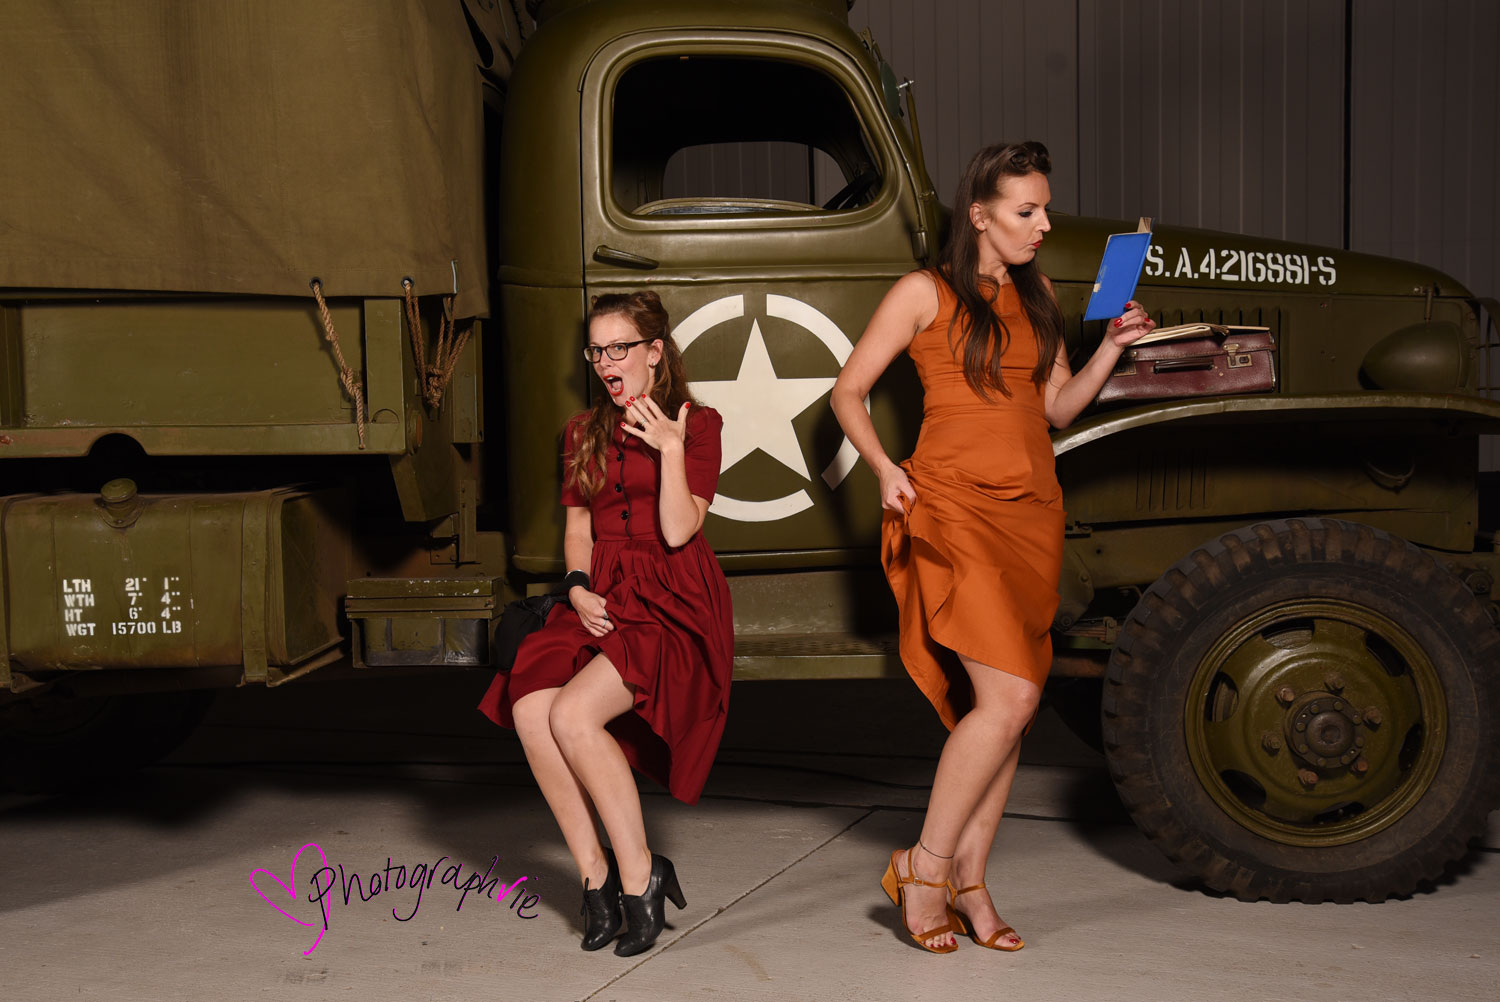 Imperial-War-Museum-House-of-Cambridge-Event-40s-Dressing-Up-Pin-up-Photobooth-and-Photos-by-Photographvie-Ely--(18).jpg